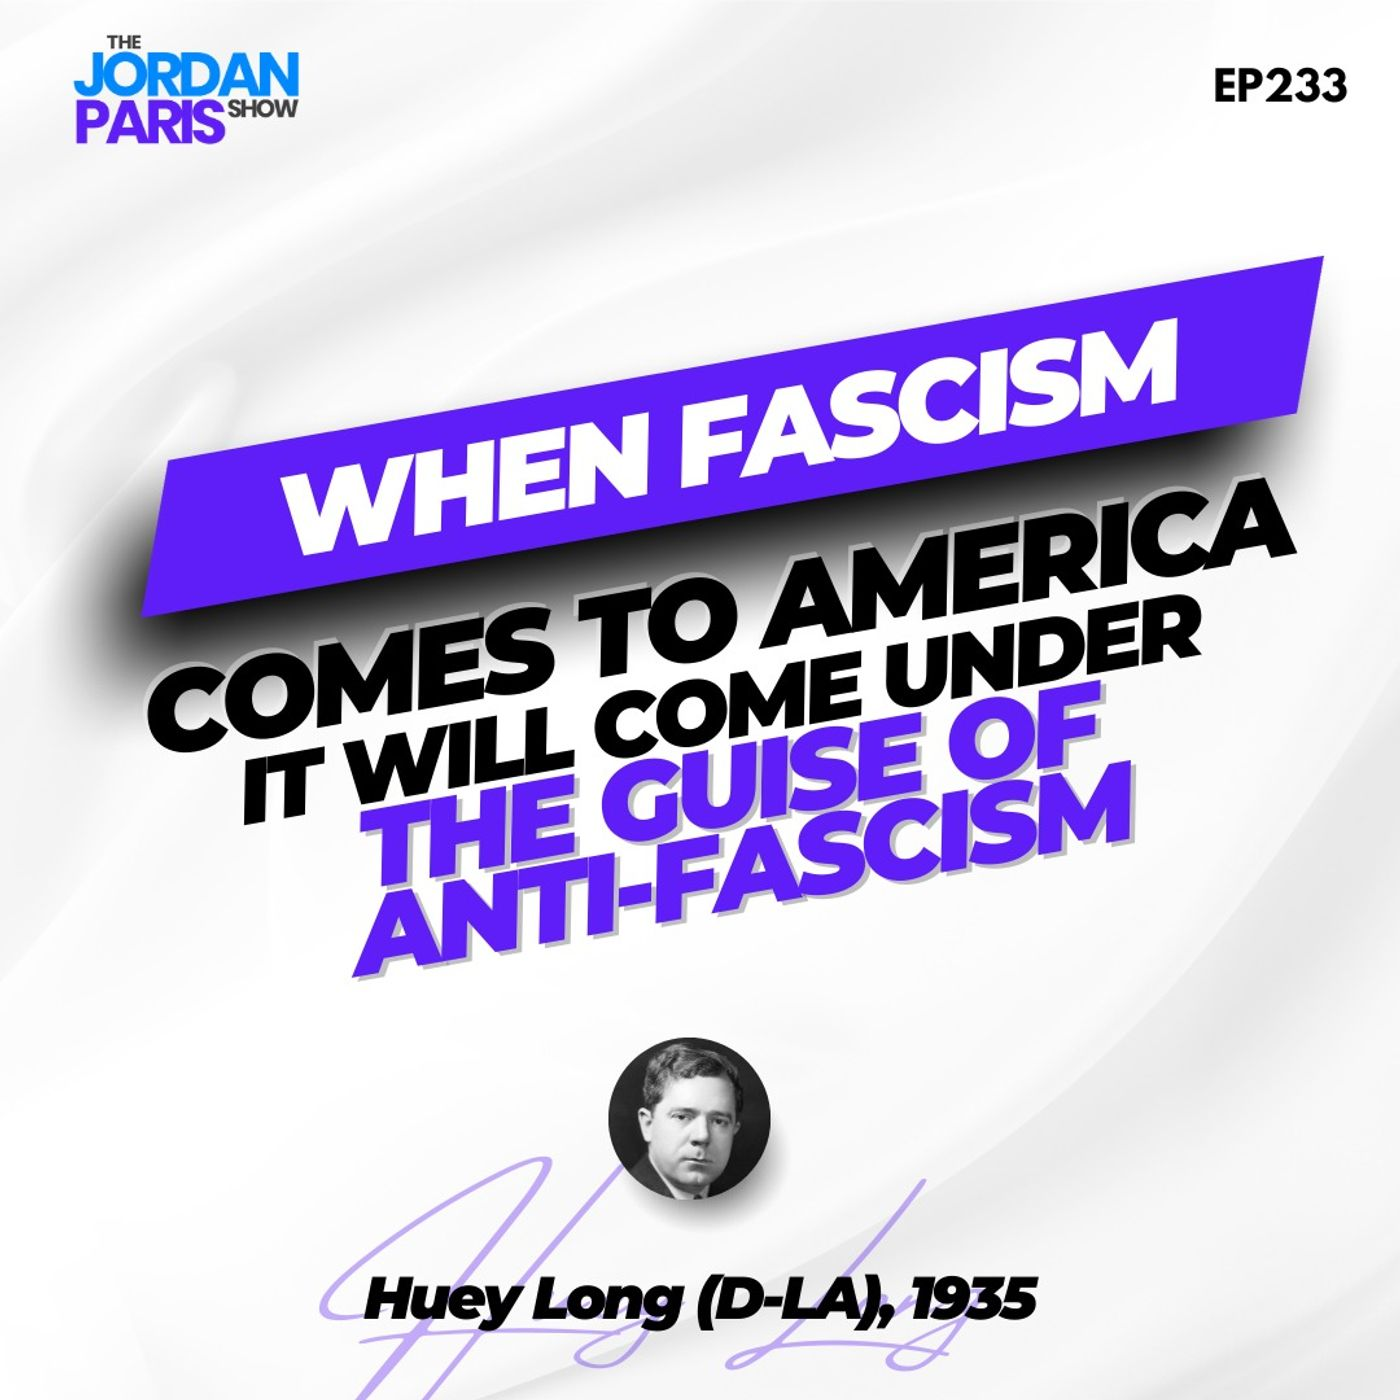 """When Fascism Comes to America, It Will Come Under the Guise of Anti-fascism"""